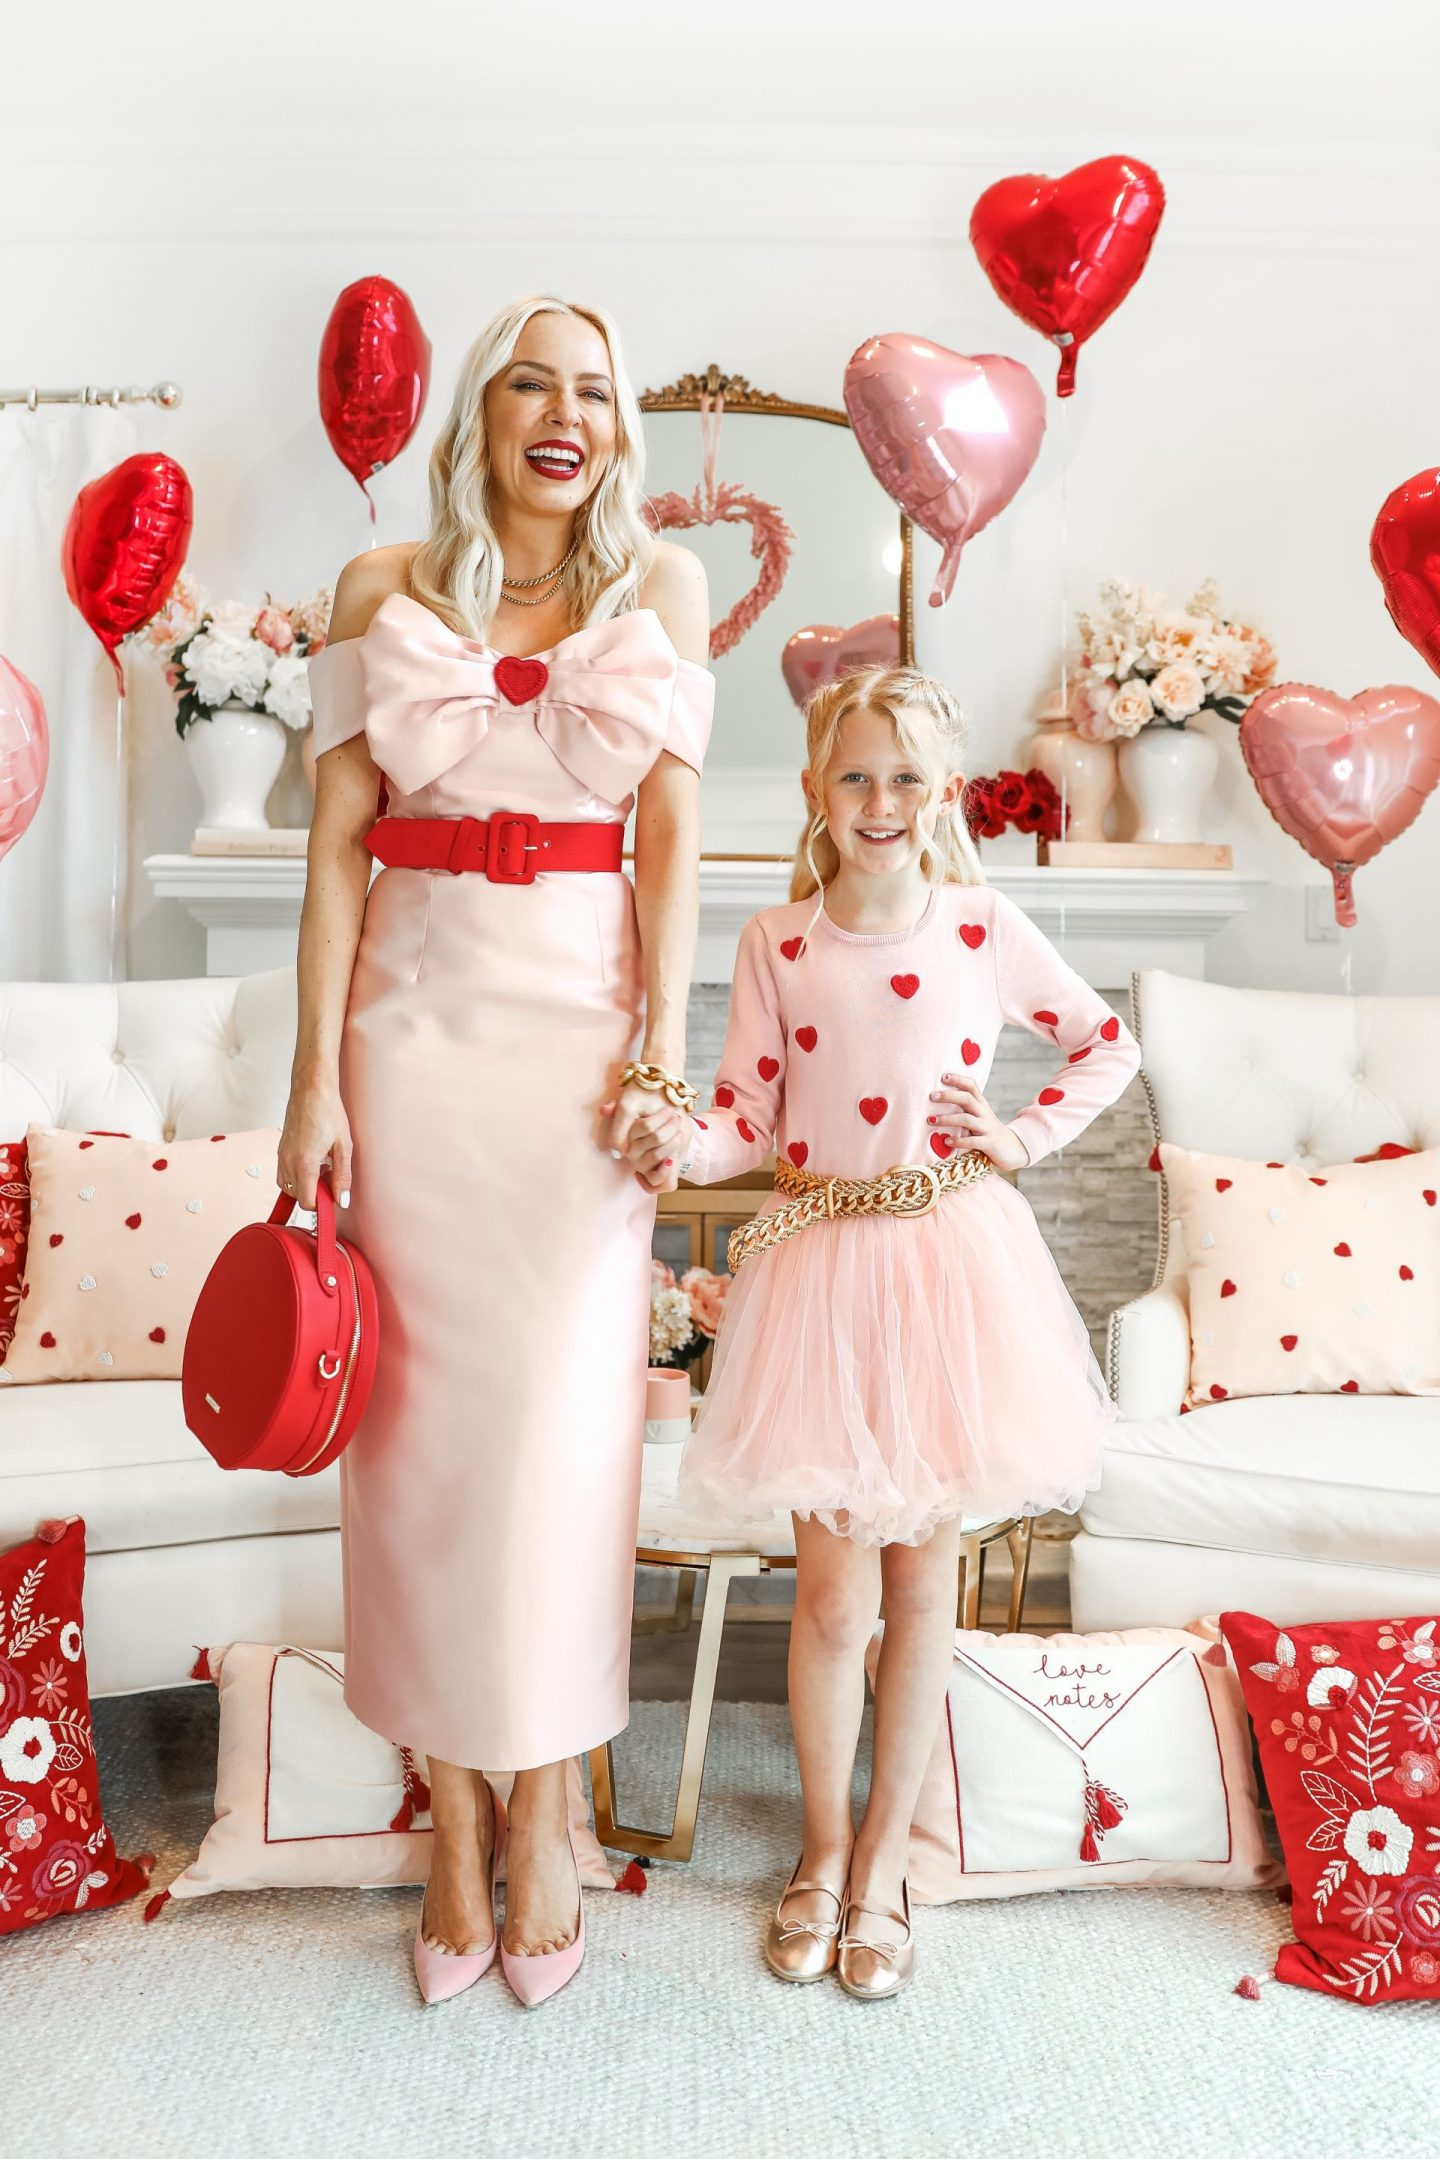 Valentine's Day fashion and décor inspiration for mommy and me, by Lombard & Fifth.